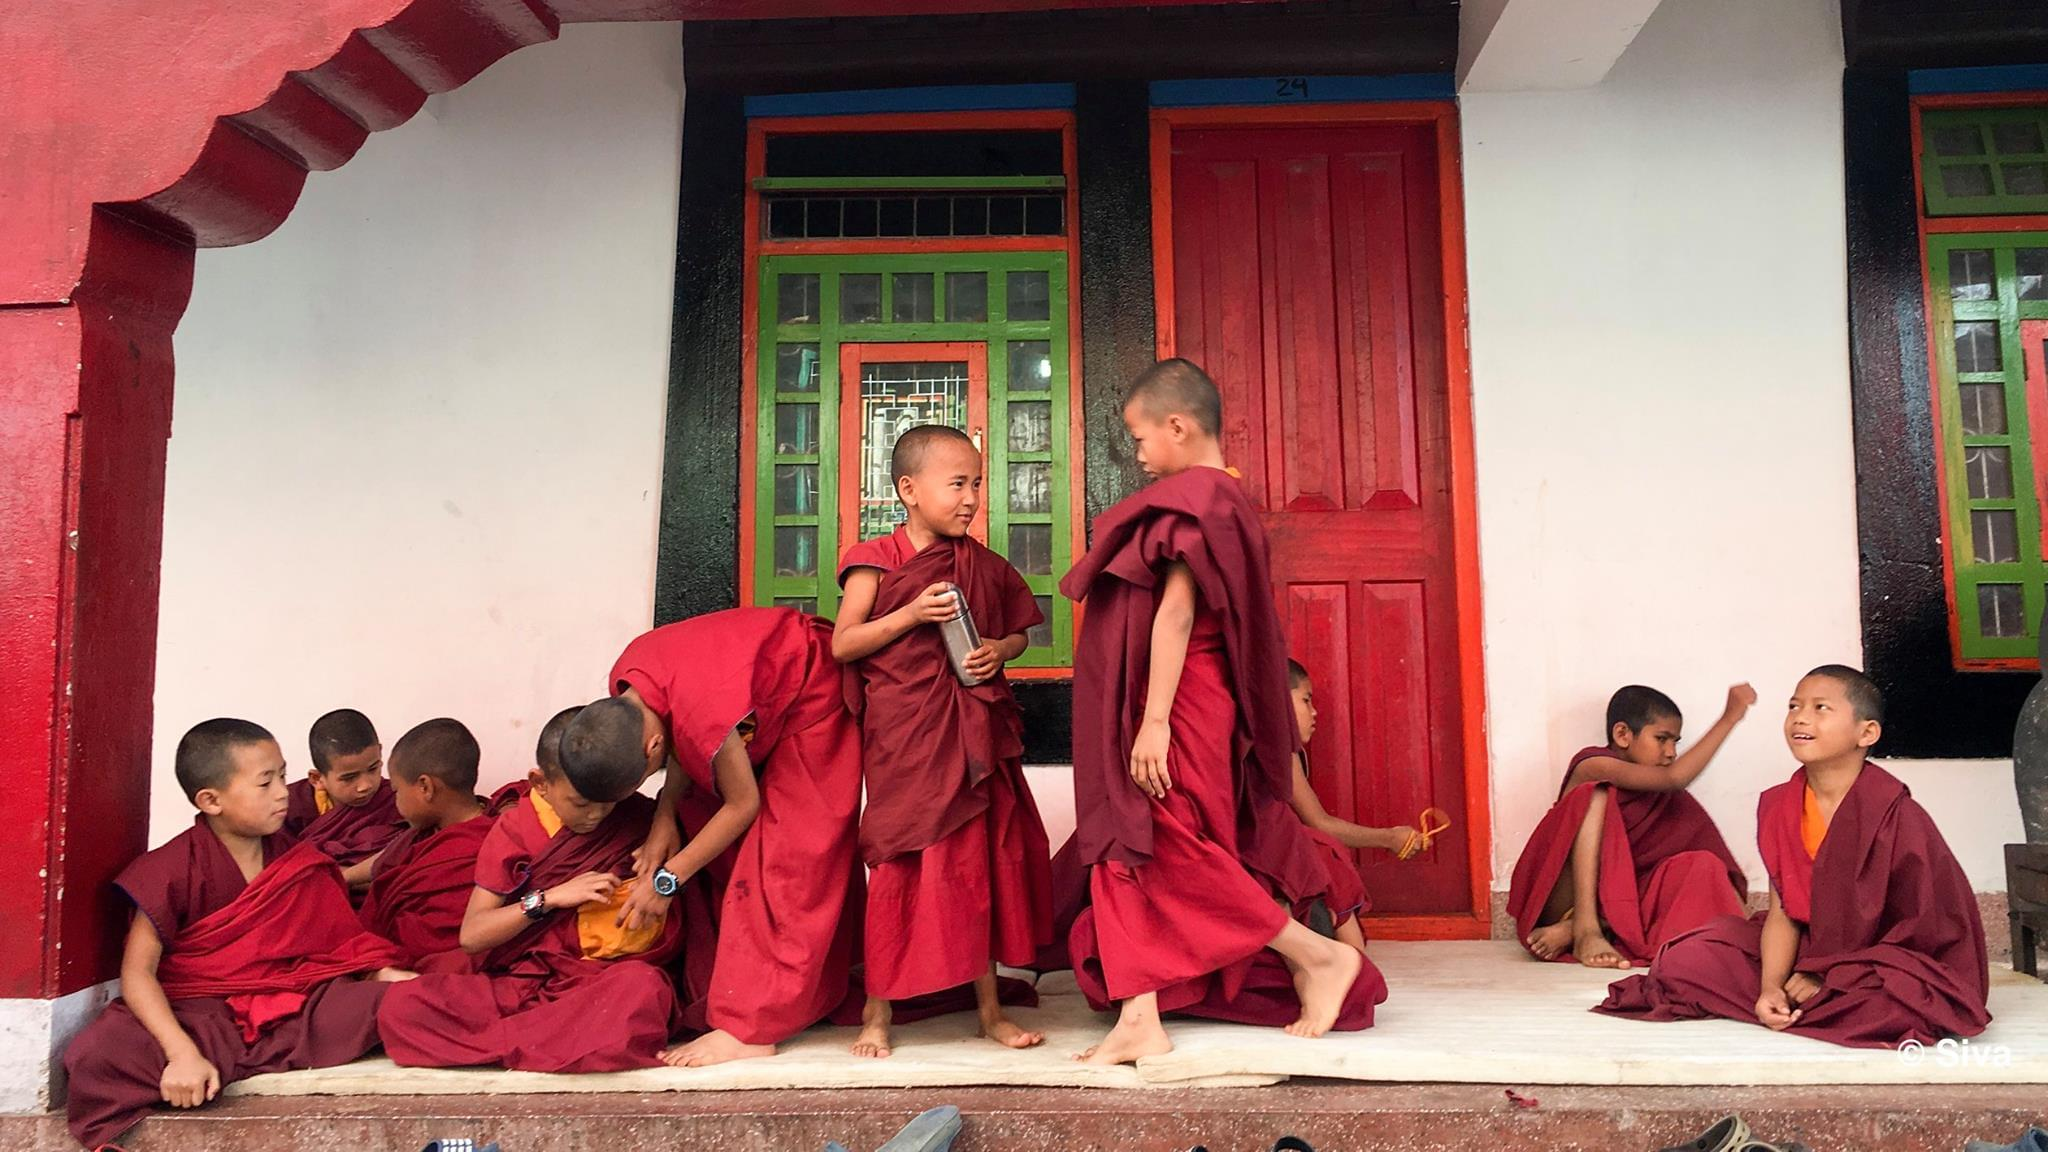 Playful Monks, Sikkim